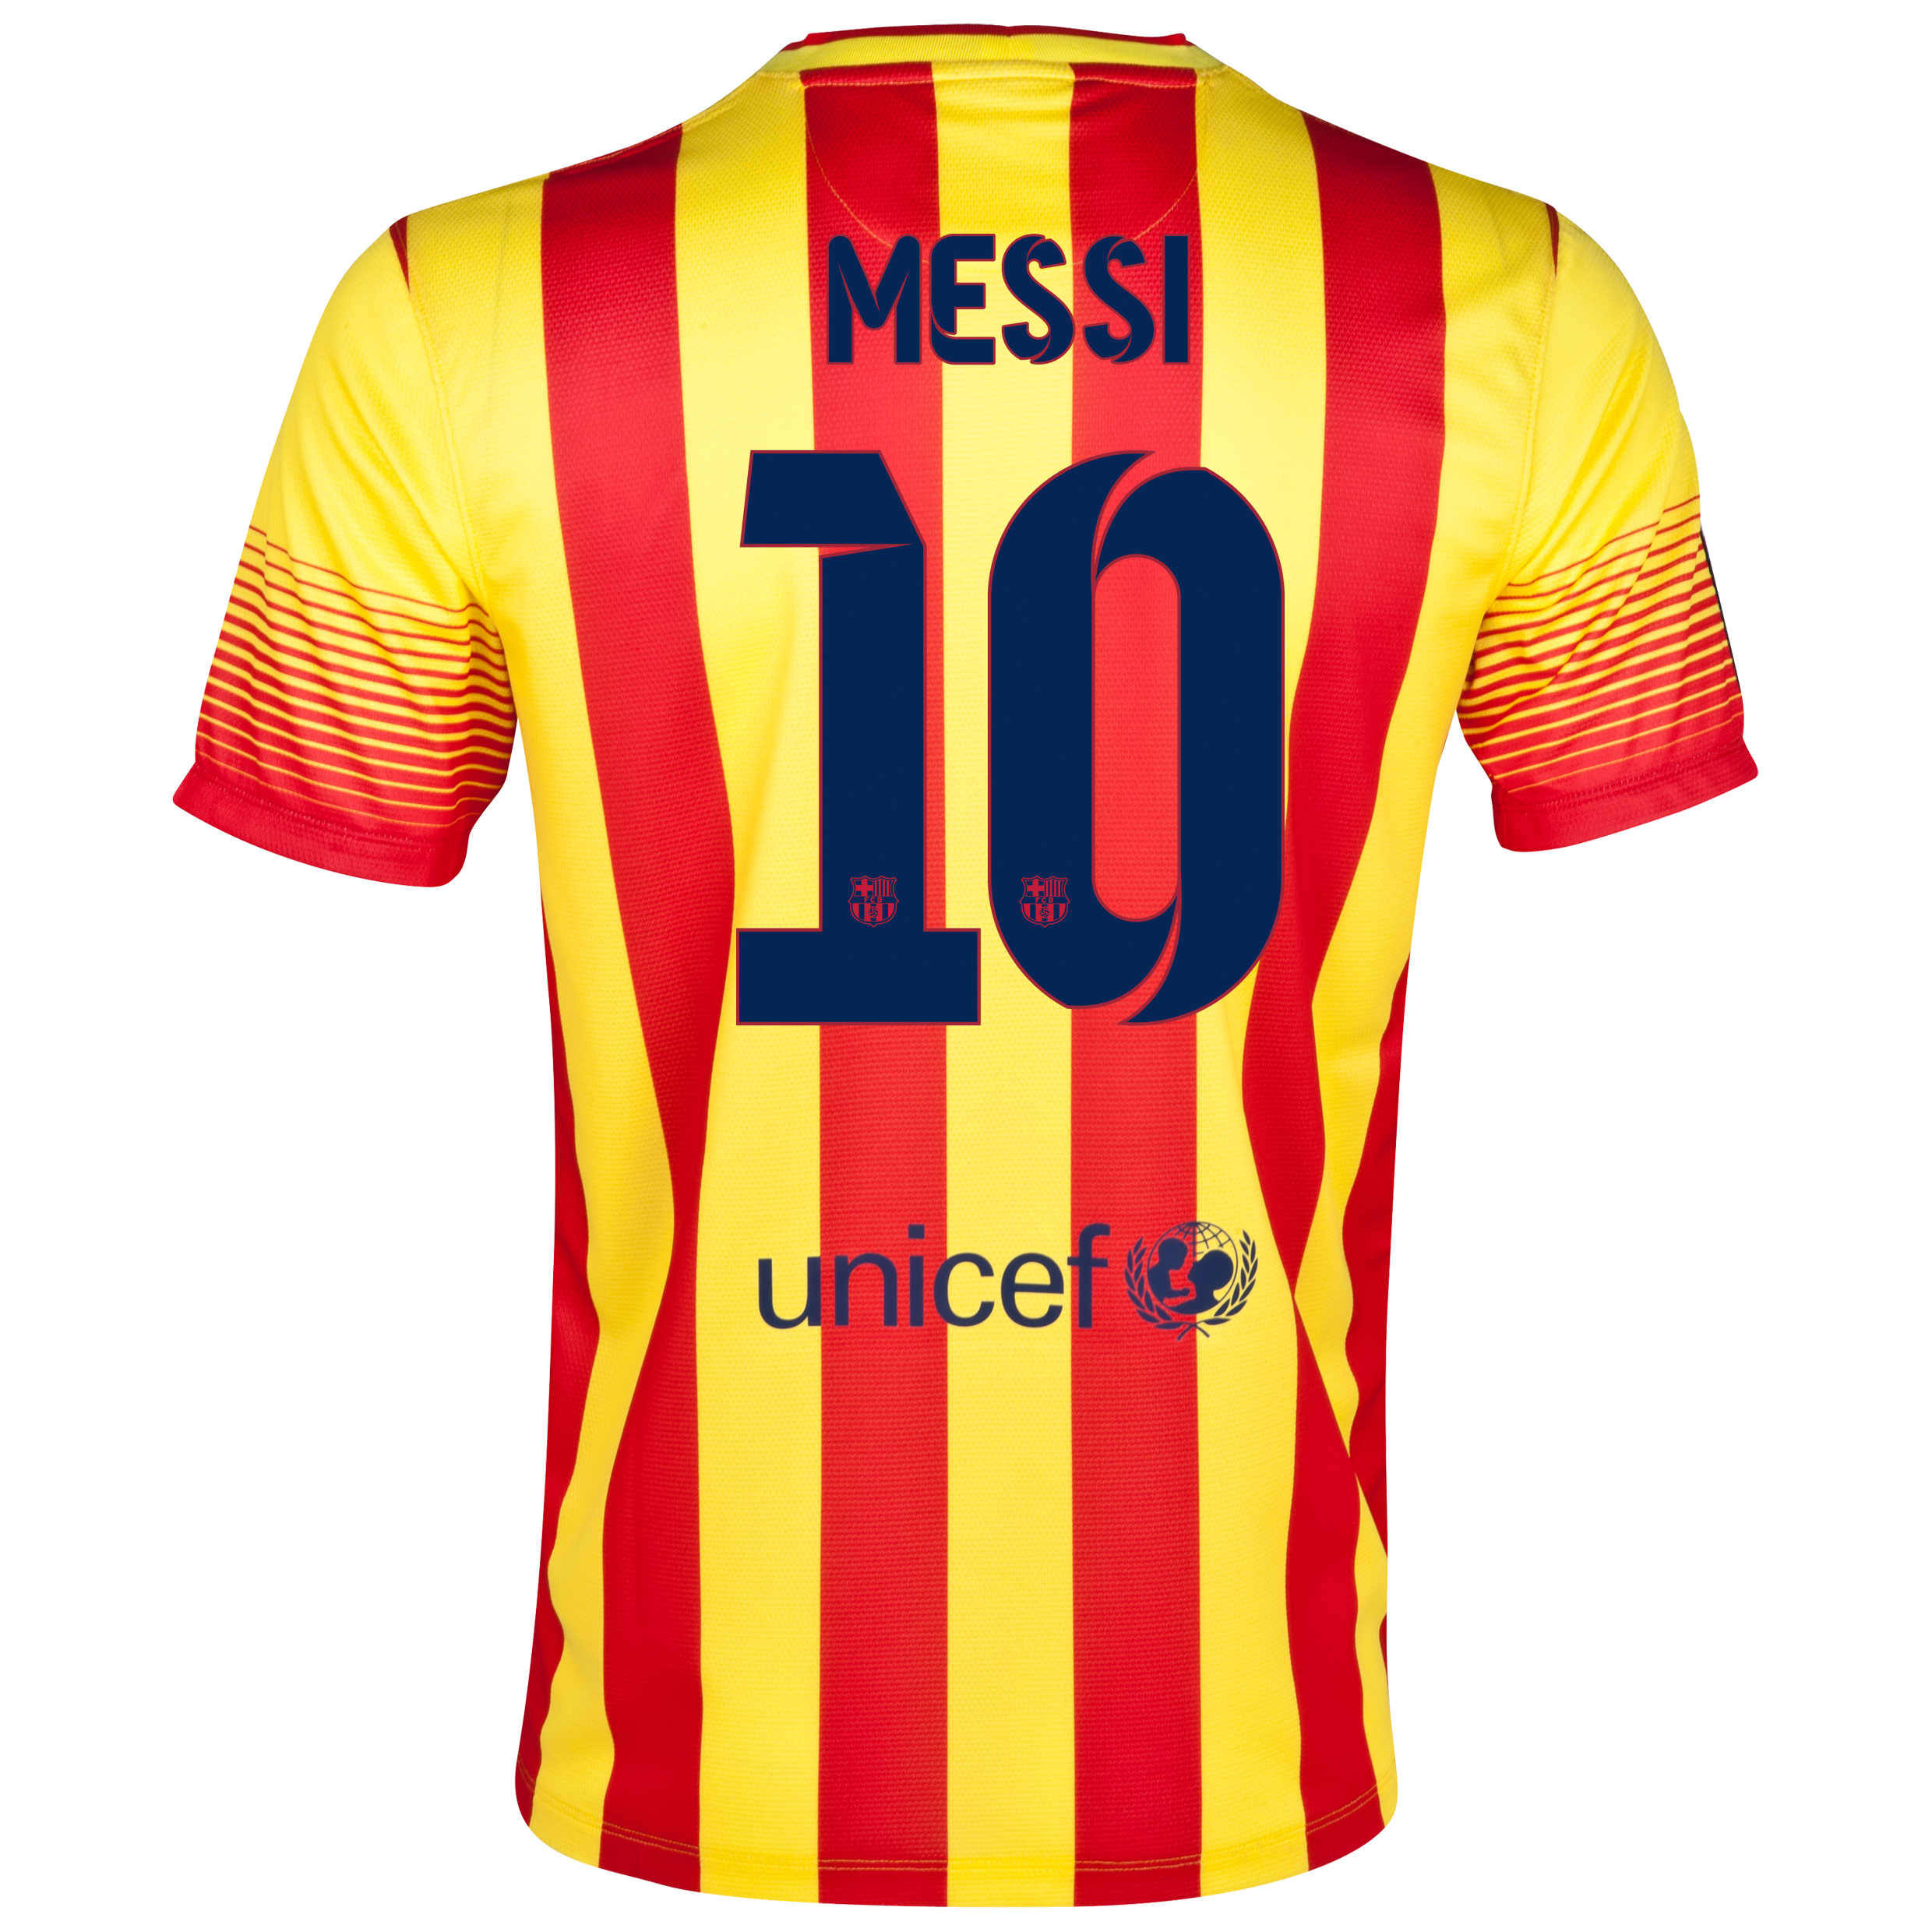 Barcelona Away Shirt 2013/14 with Messi 10 printing